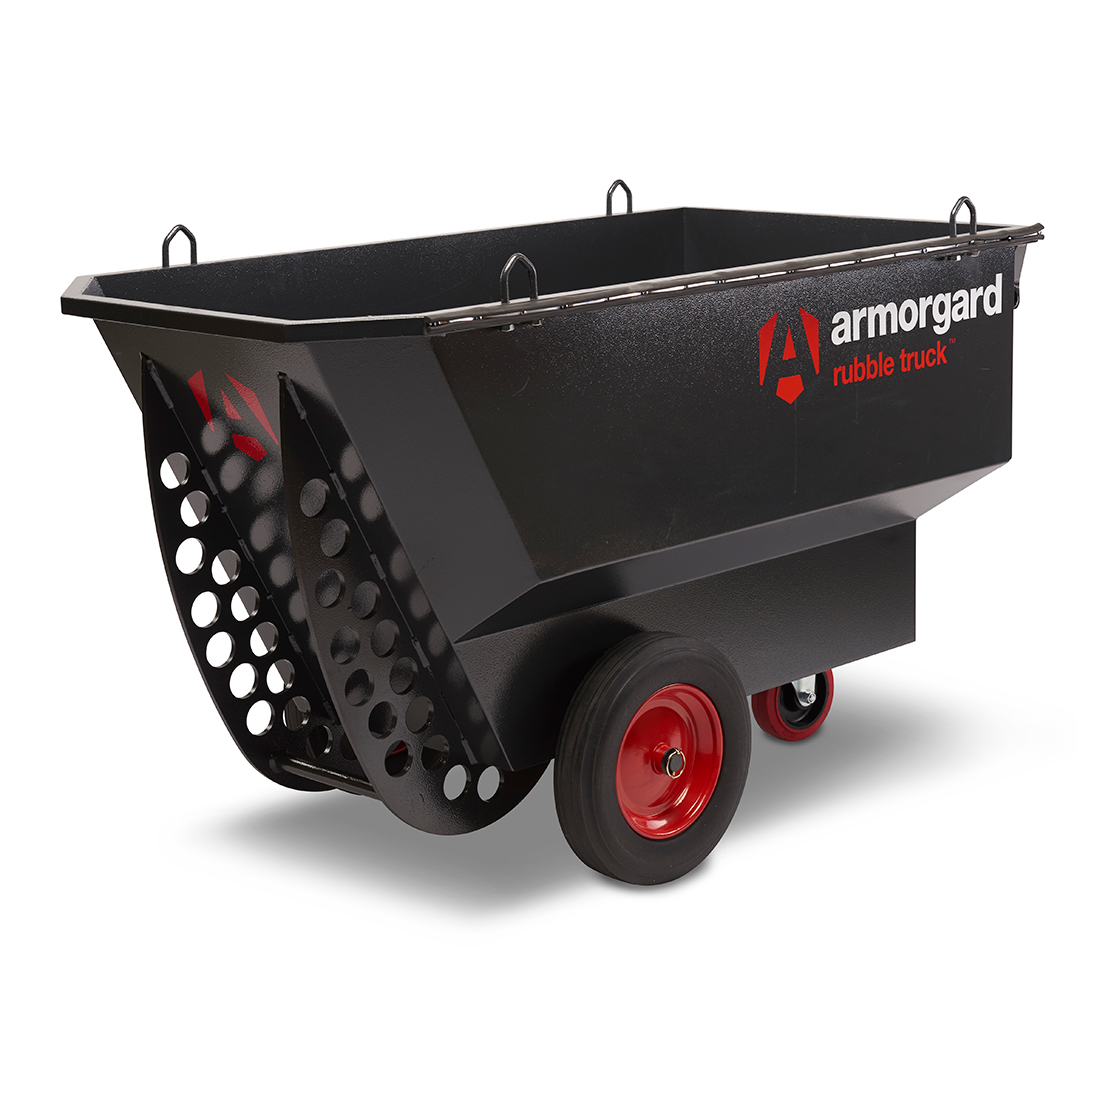 Armorgard Rubble Truck RT400